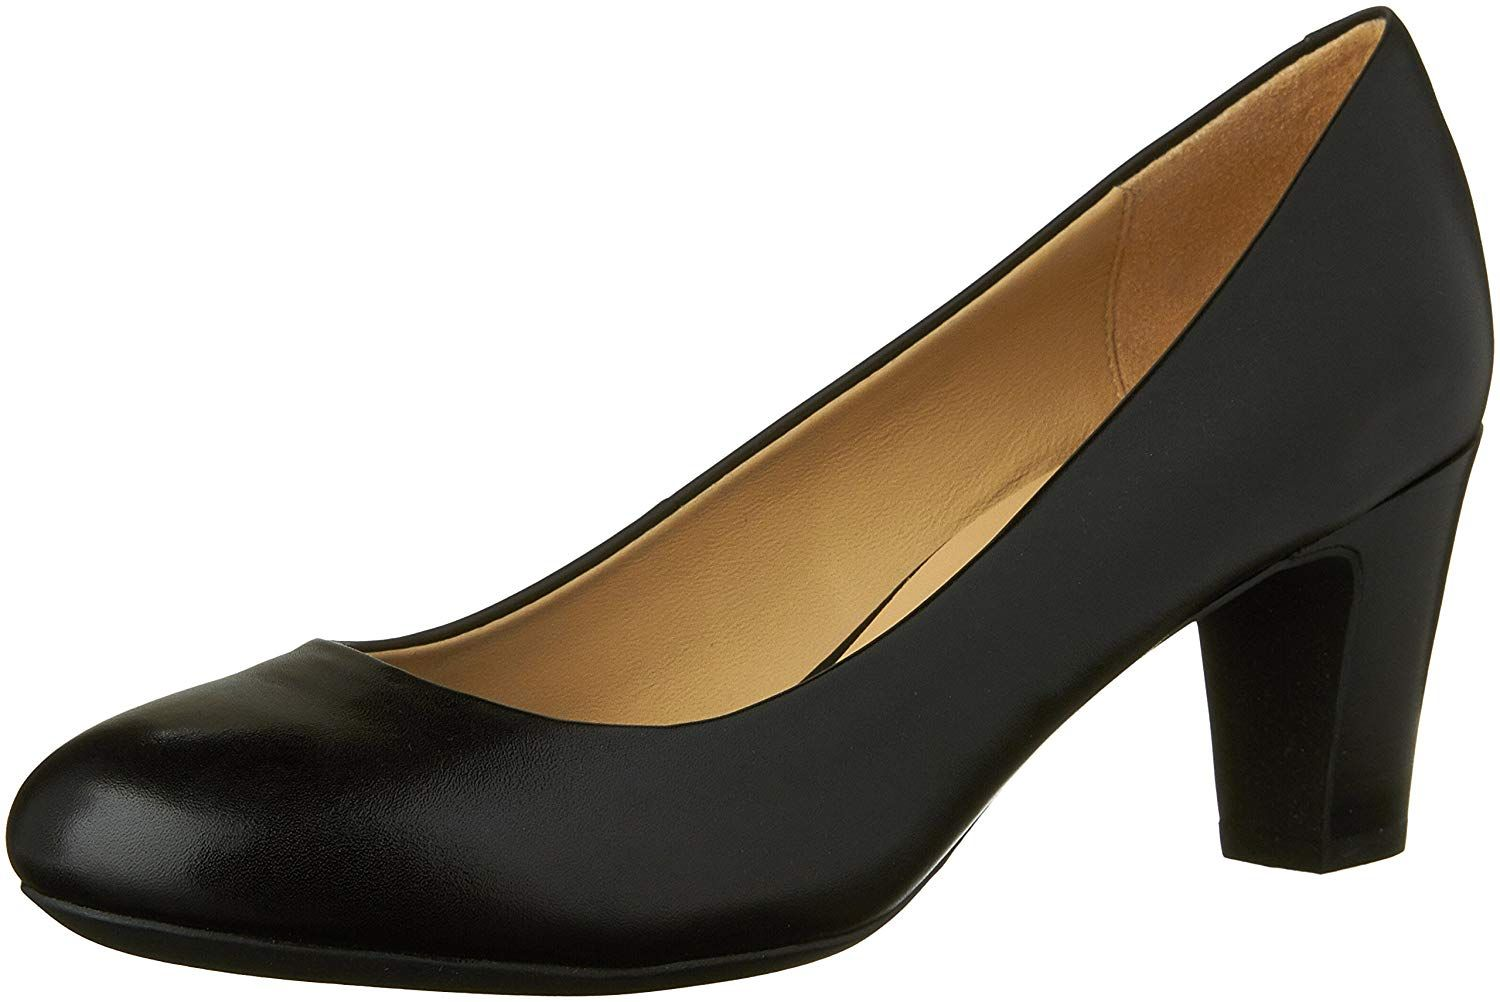 Geox Women S Marie Claire Mid Dress Pump Spice Up Your Style With The Fabulous Geox Marie Claire Mid B Women S Shoes Athl Pumps Office Shoes Women Pump Dress [ 1002 x 1500 Pixel ]